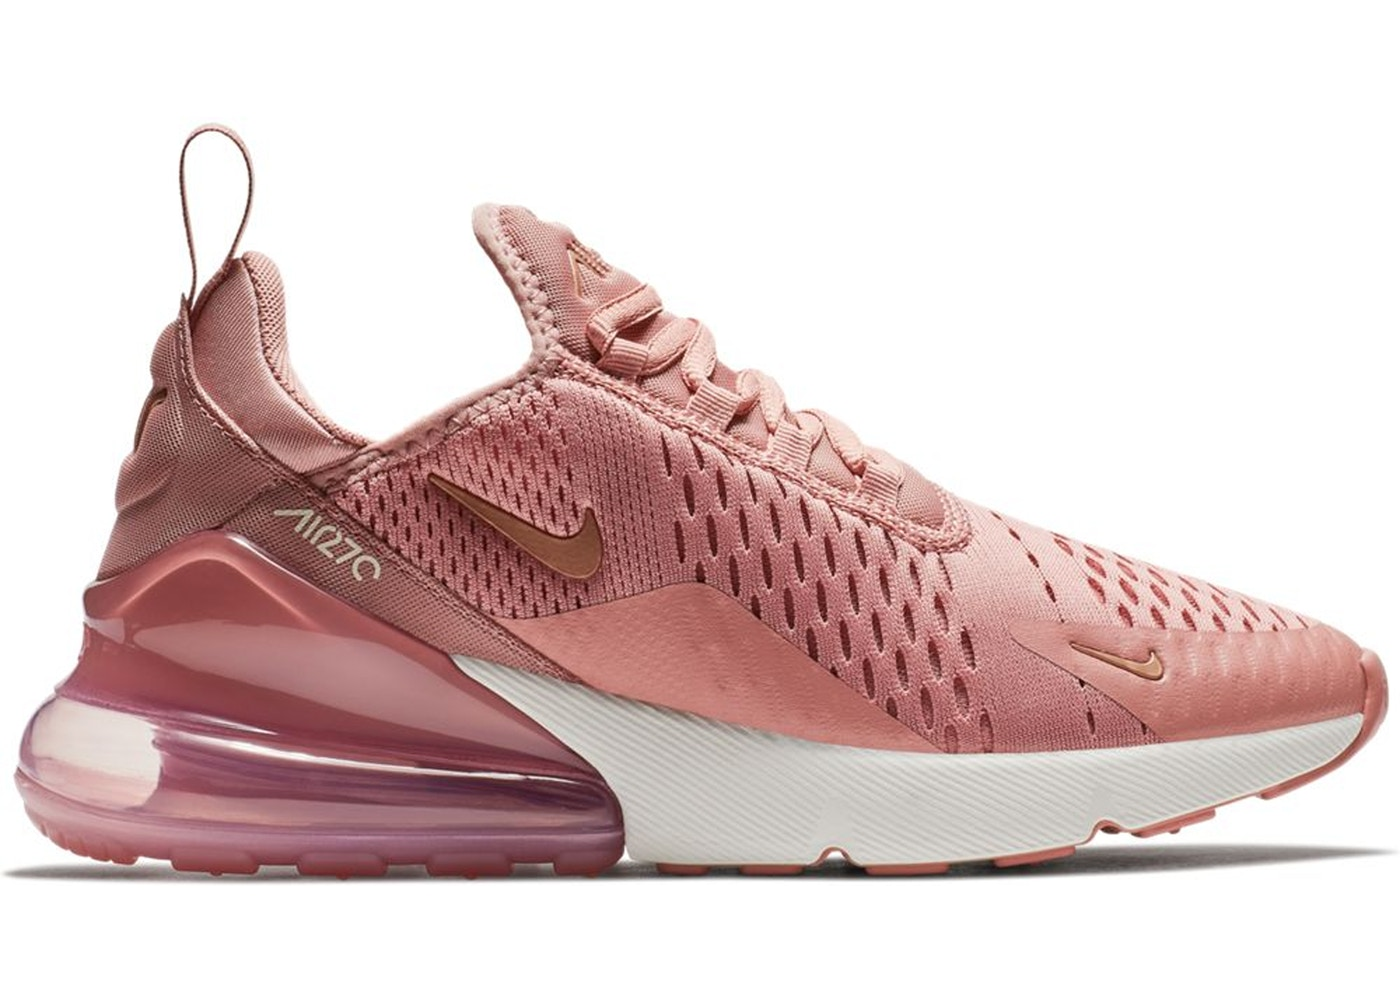 aadacab66e72 Sell. or Ask. Size  6W. View All Bids. Air Max 270 Rust Pink ...